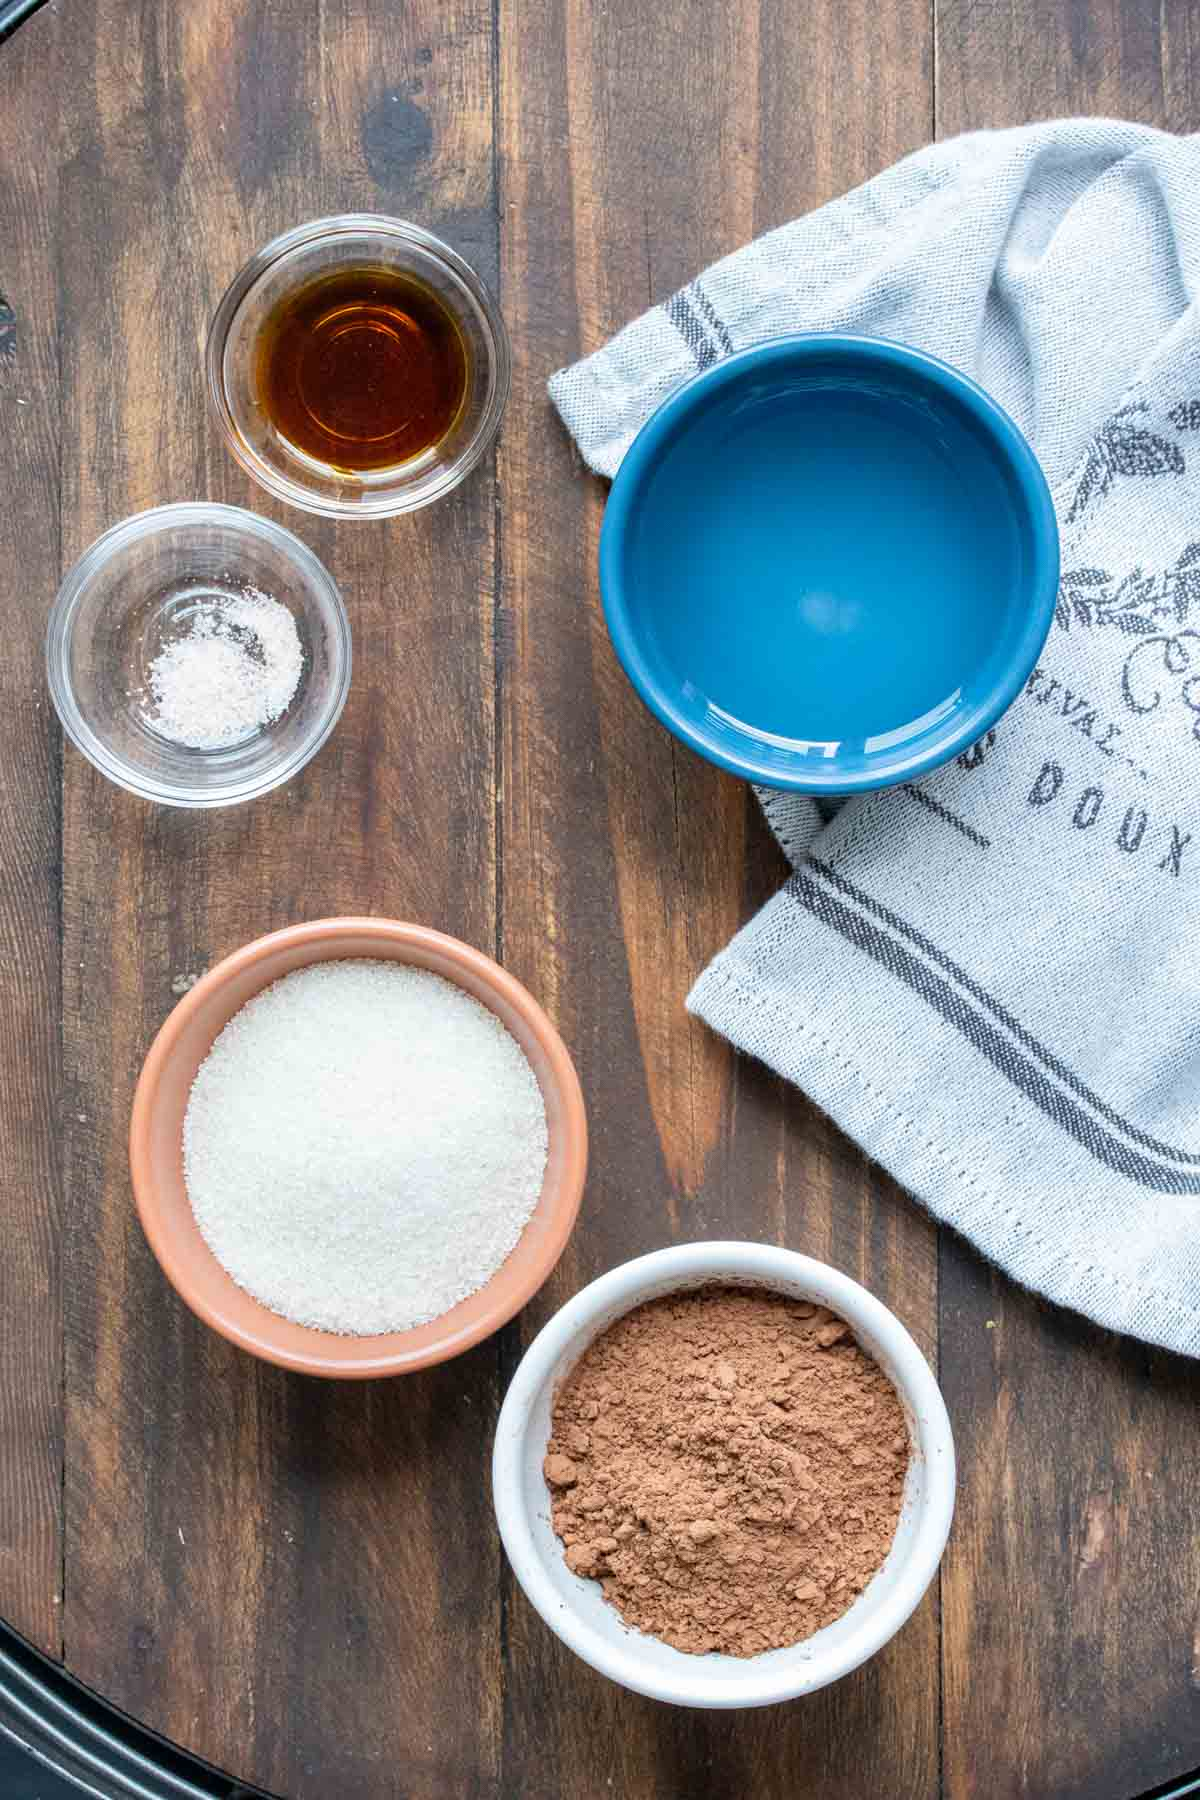 Ingredients needed to make homemade chocolate syrup in bowls in a wooden surface